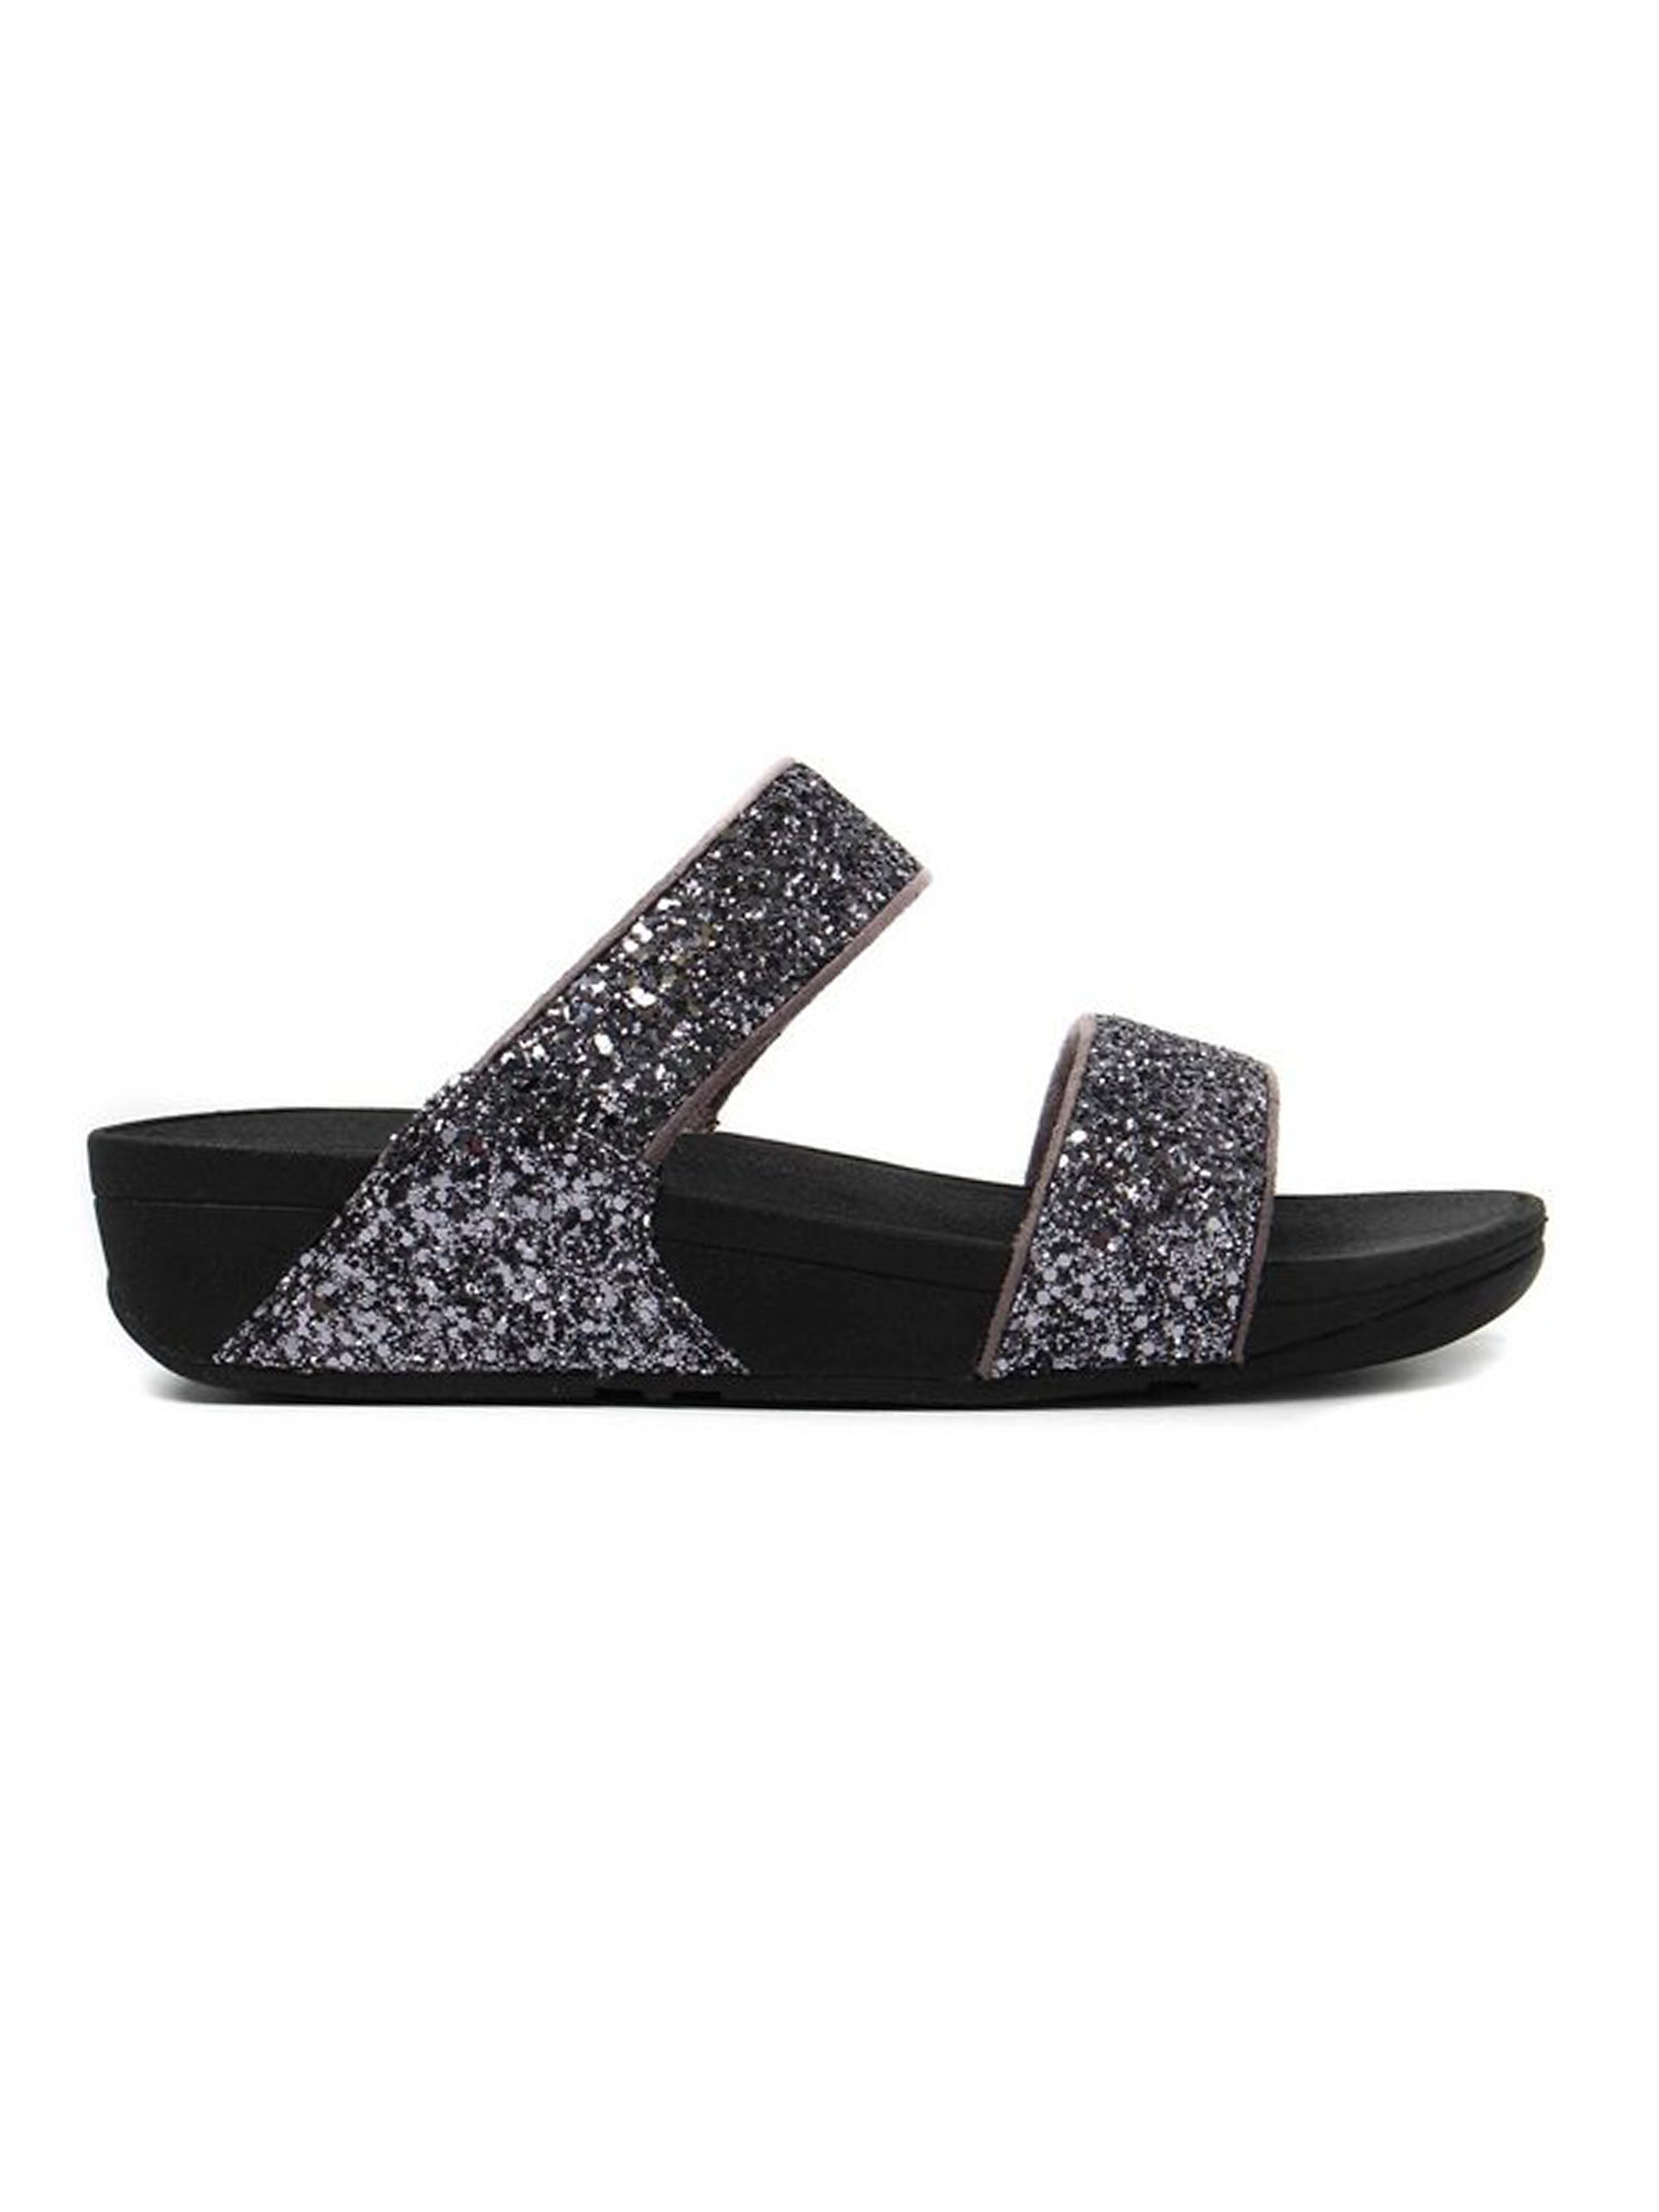 FitFlop Women's Glitterball Slide Sandals Pewter